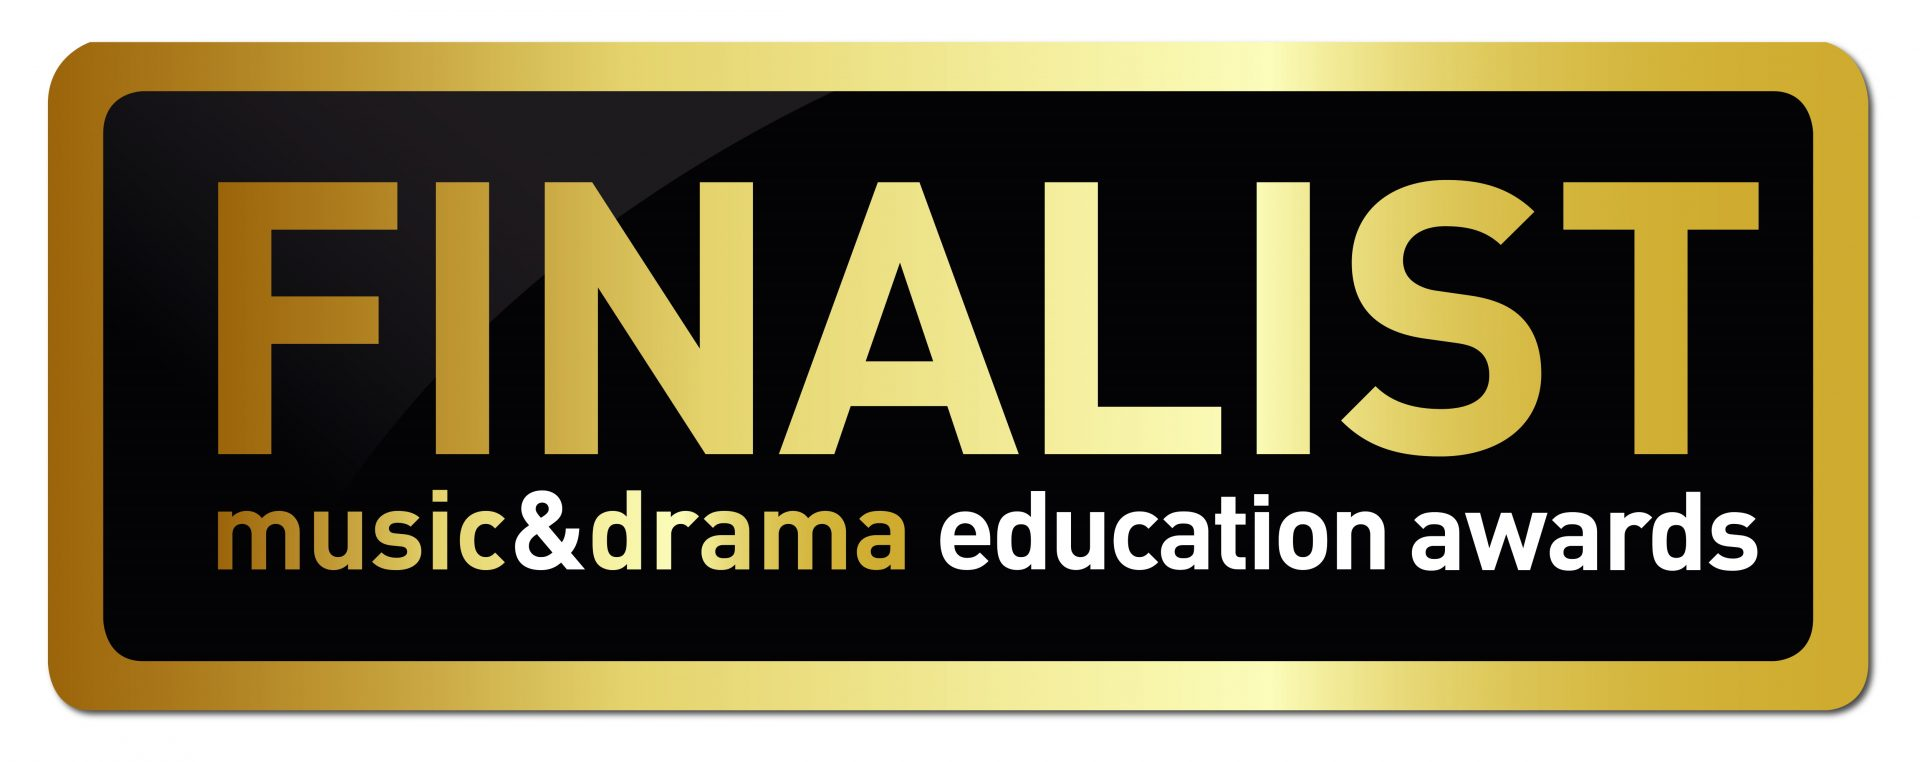 Song Story is a Finalist Music & Drama Awards